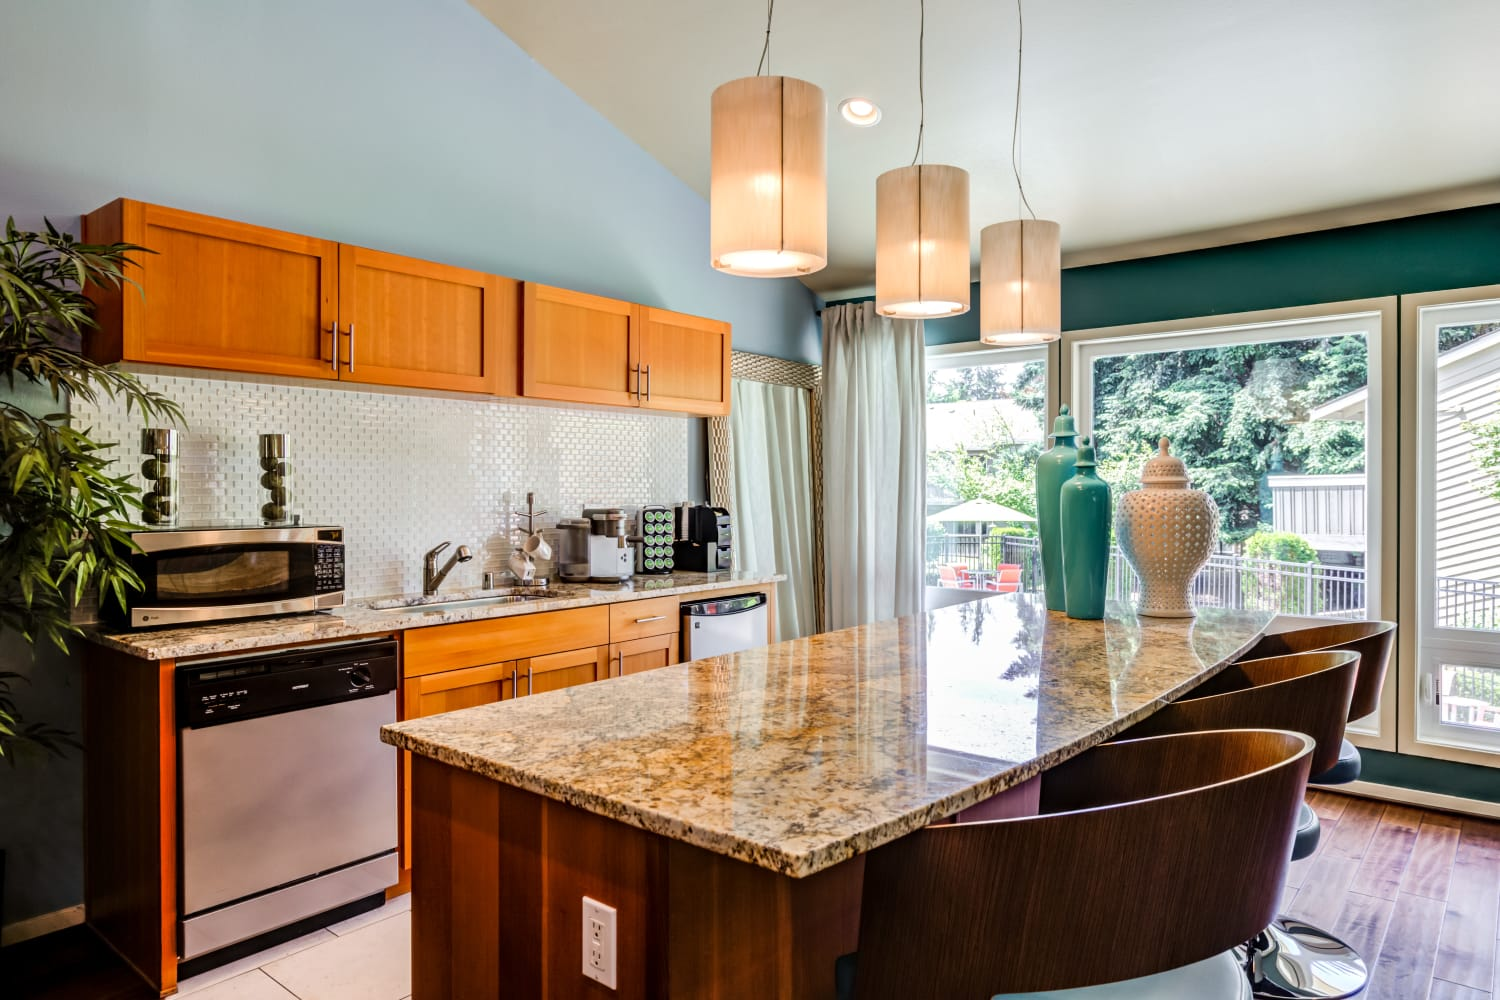 Kitchen at Vue Kirkland Apartments in Kirkland, Washington